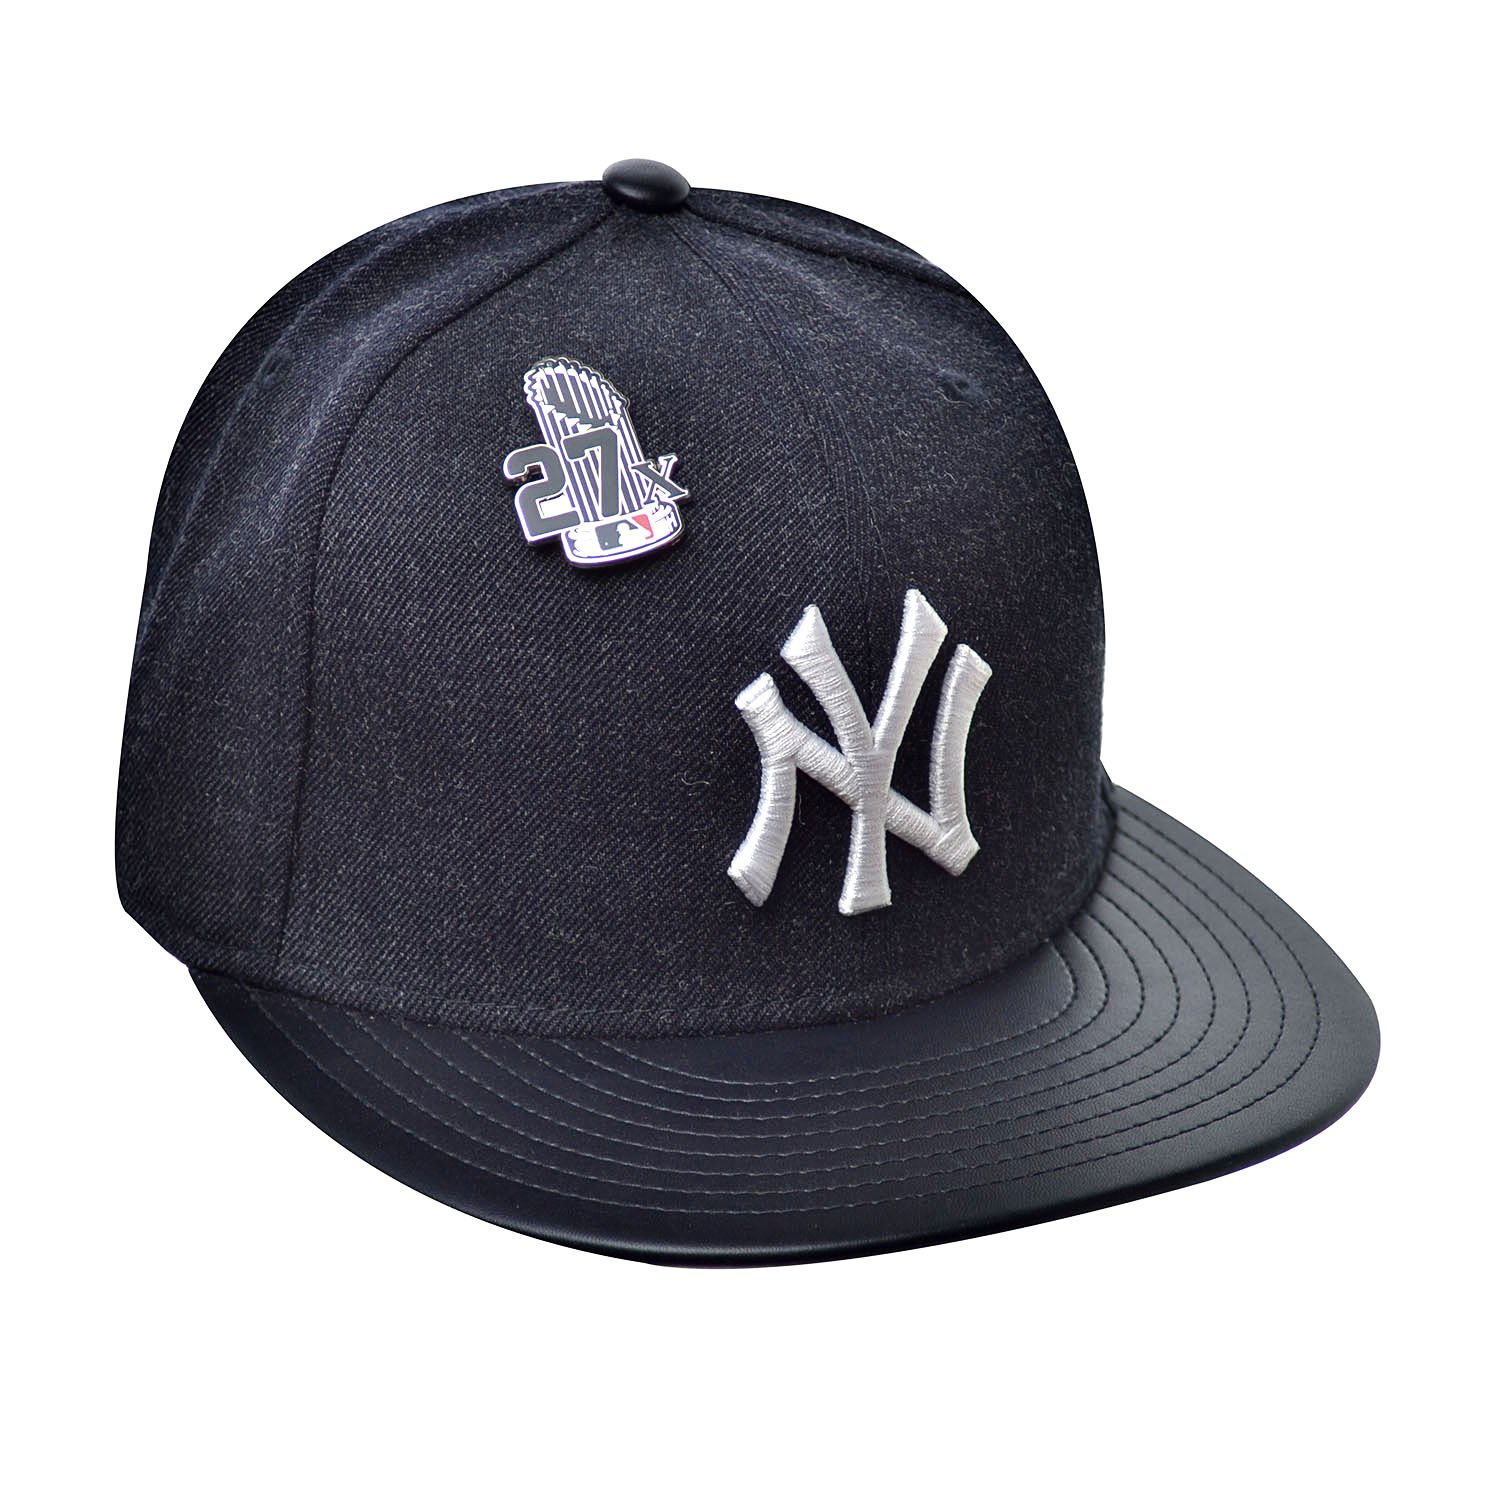 a6a5d06d6cd New Era 59Fifty Hat New York Yankees Pin 27X Trophy MLB Navy Blue Fitted Cap  at Amazon Men s Clothing store